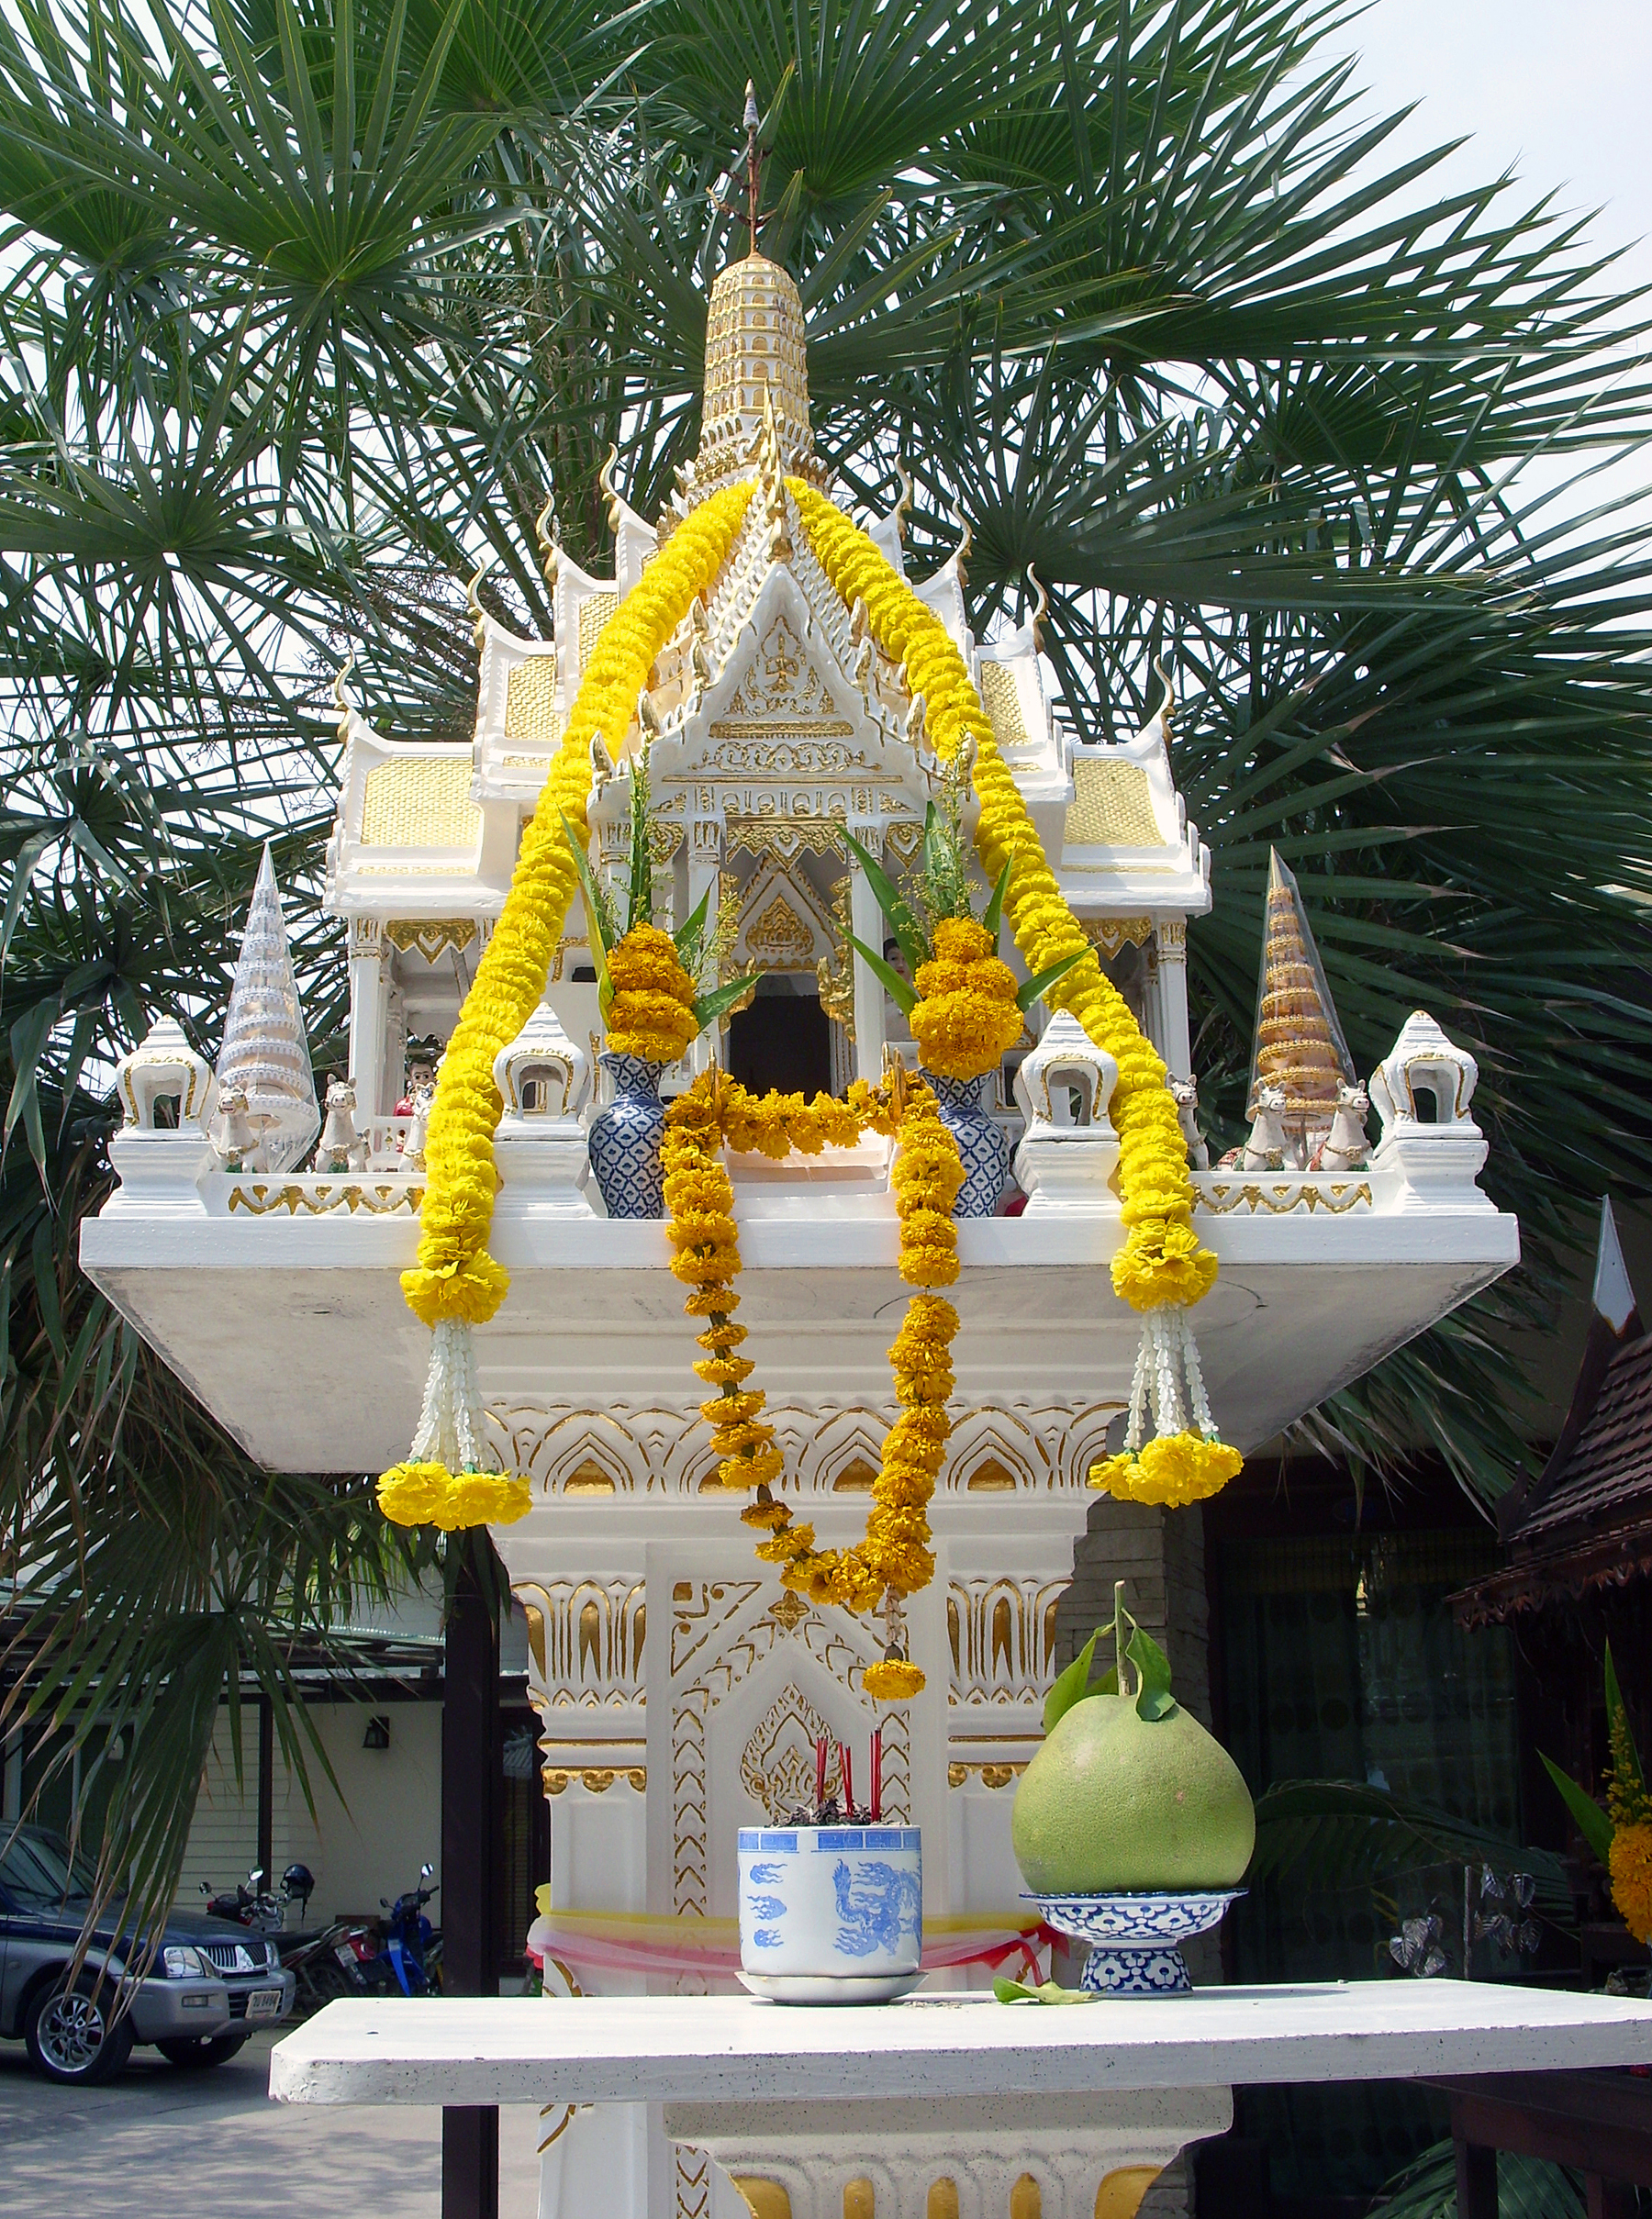 Thai Spirit Houise, Charm, House, Mythical, Offering, HQ Photo